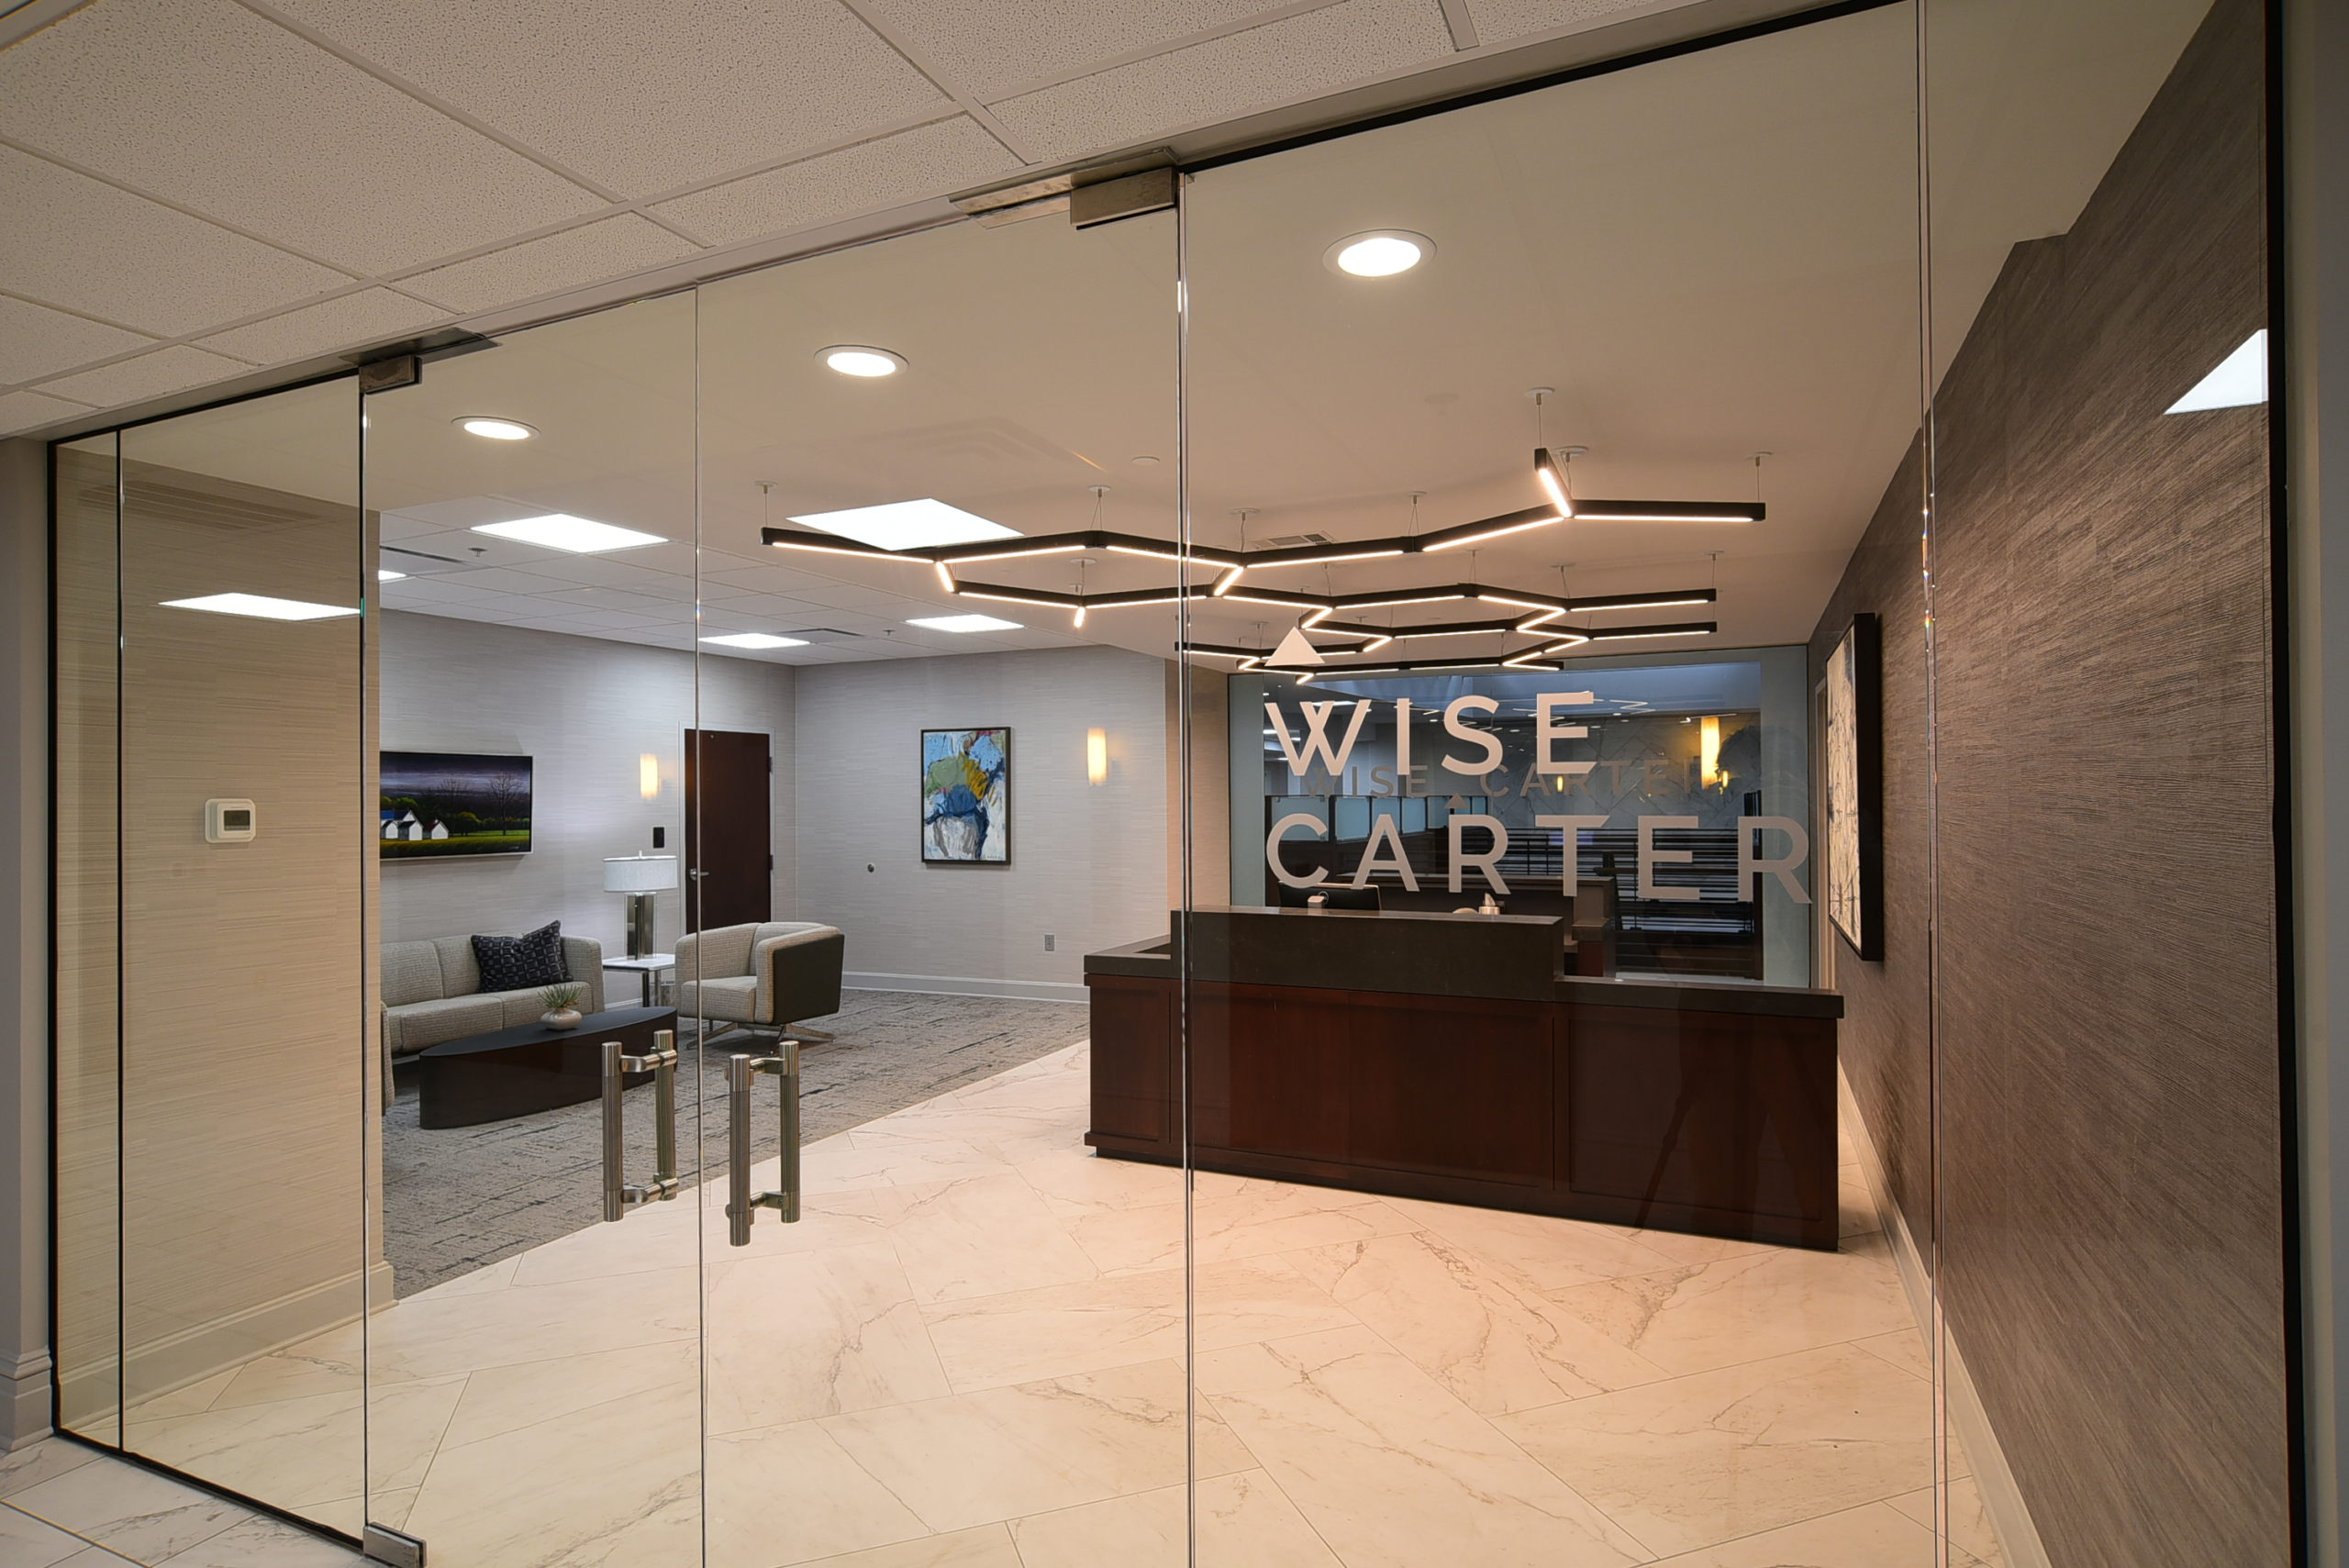 Wise Carter Announces Renewed Commitment to Heritage Building and Downtown Jackson